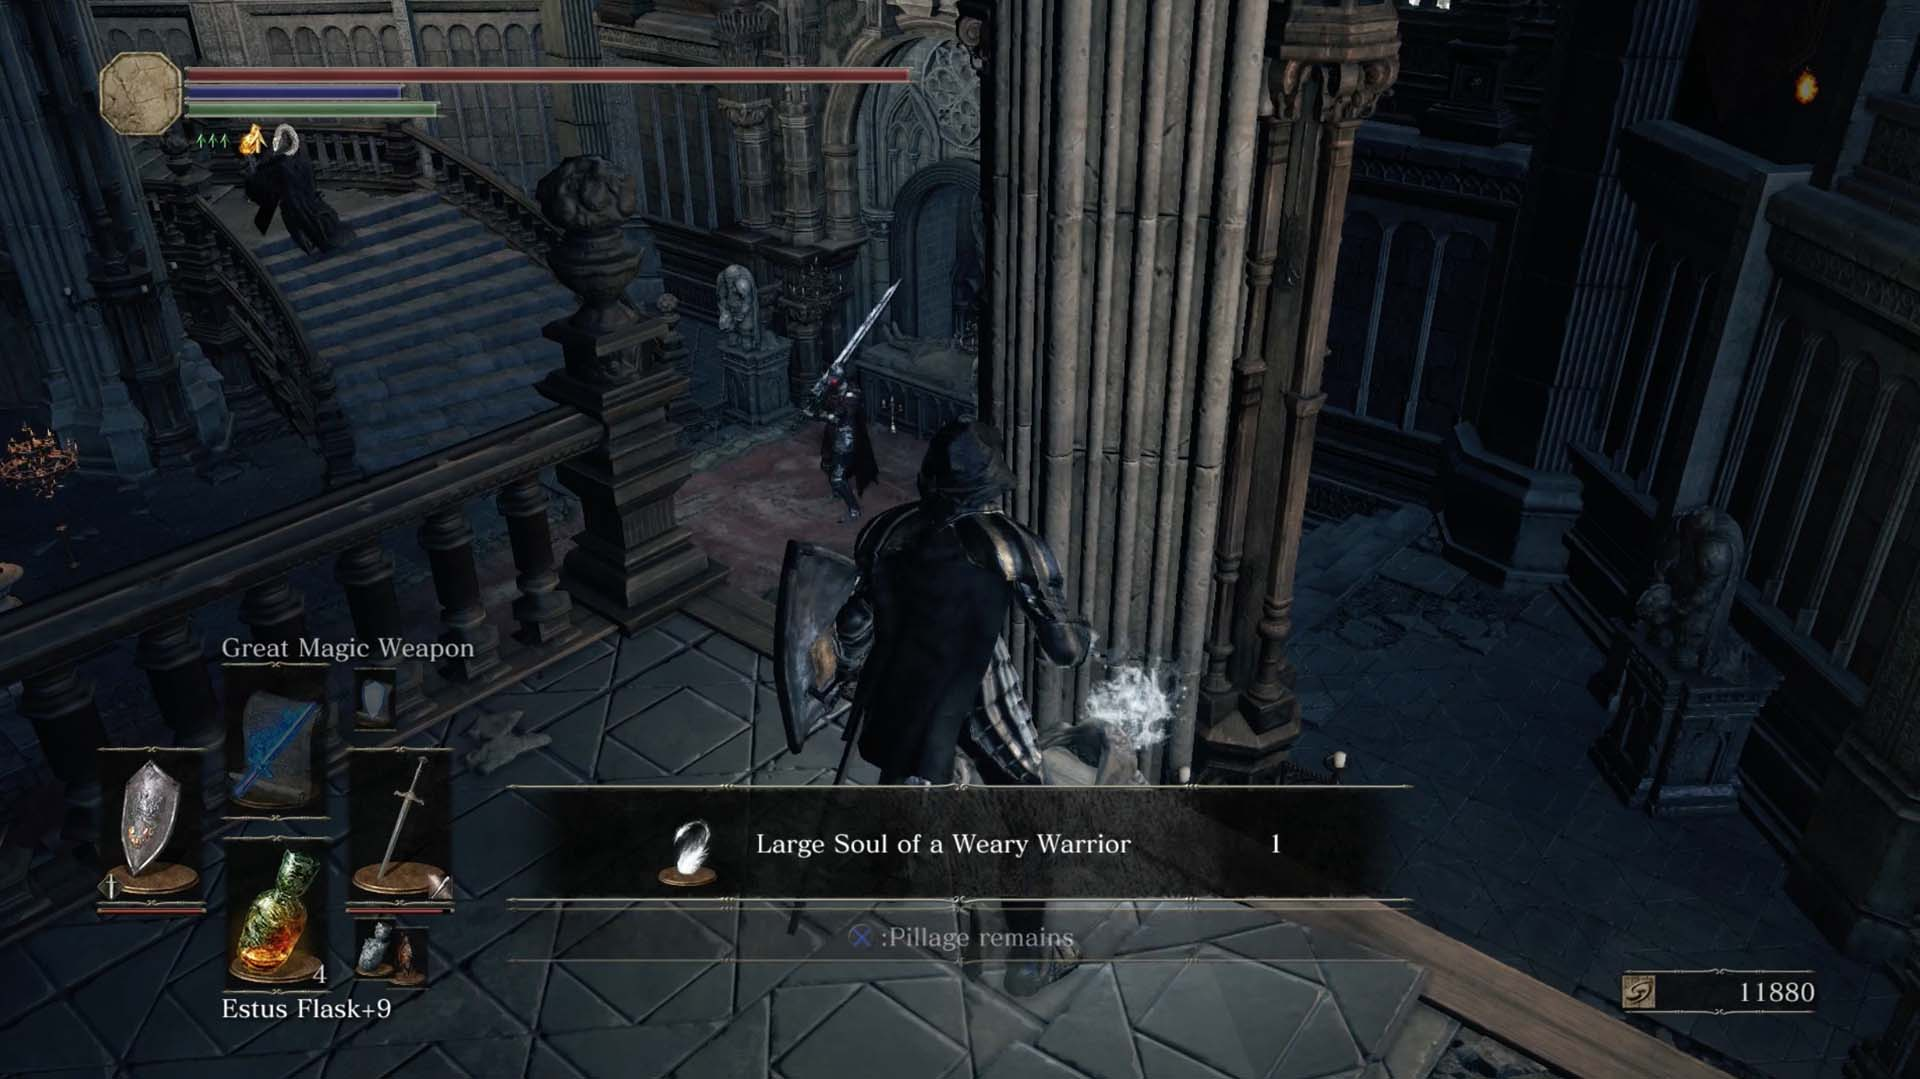 Dark souls 3 lothric castle walkthrough polygon grab the symbol of avarice and three titanite scales after defeating it there are also some titanite scales in the tiny courtyard outside the reading area biocorpaavc Gallery